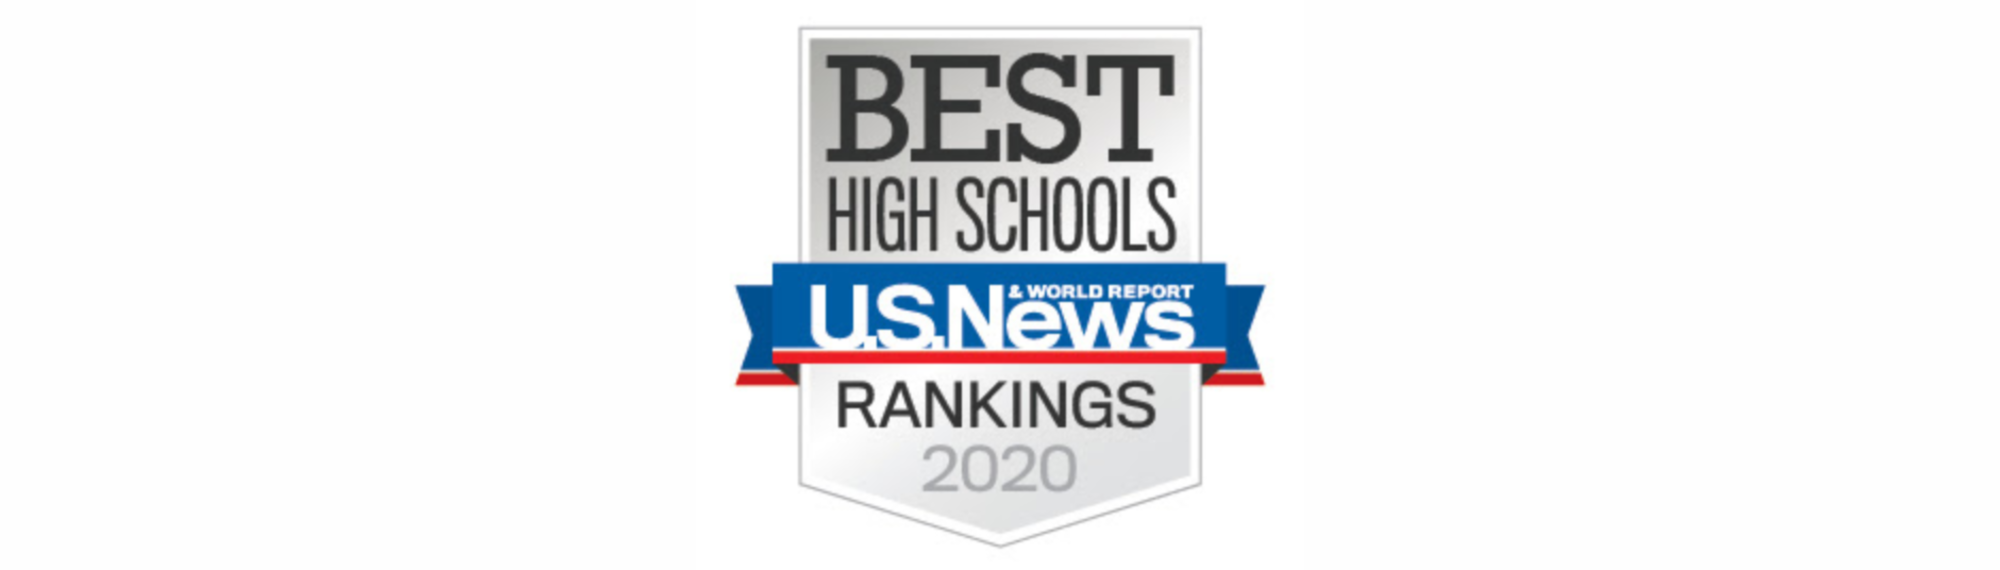 US News Best High School